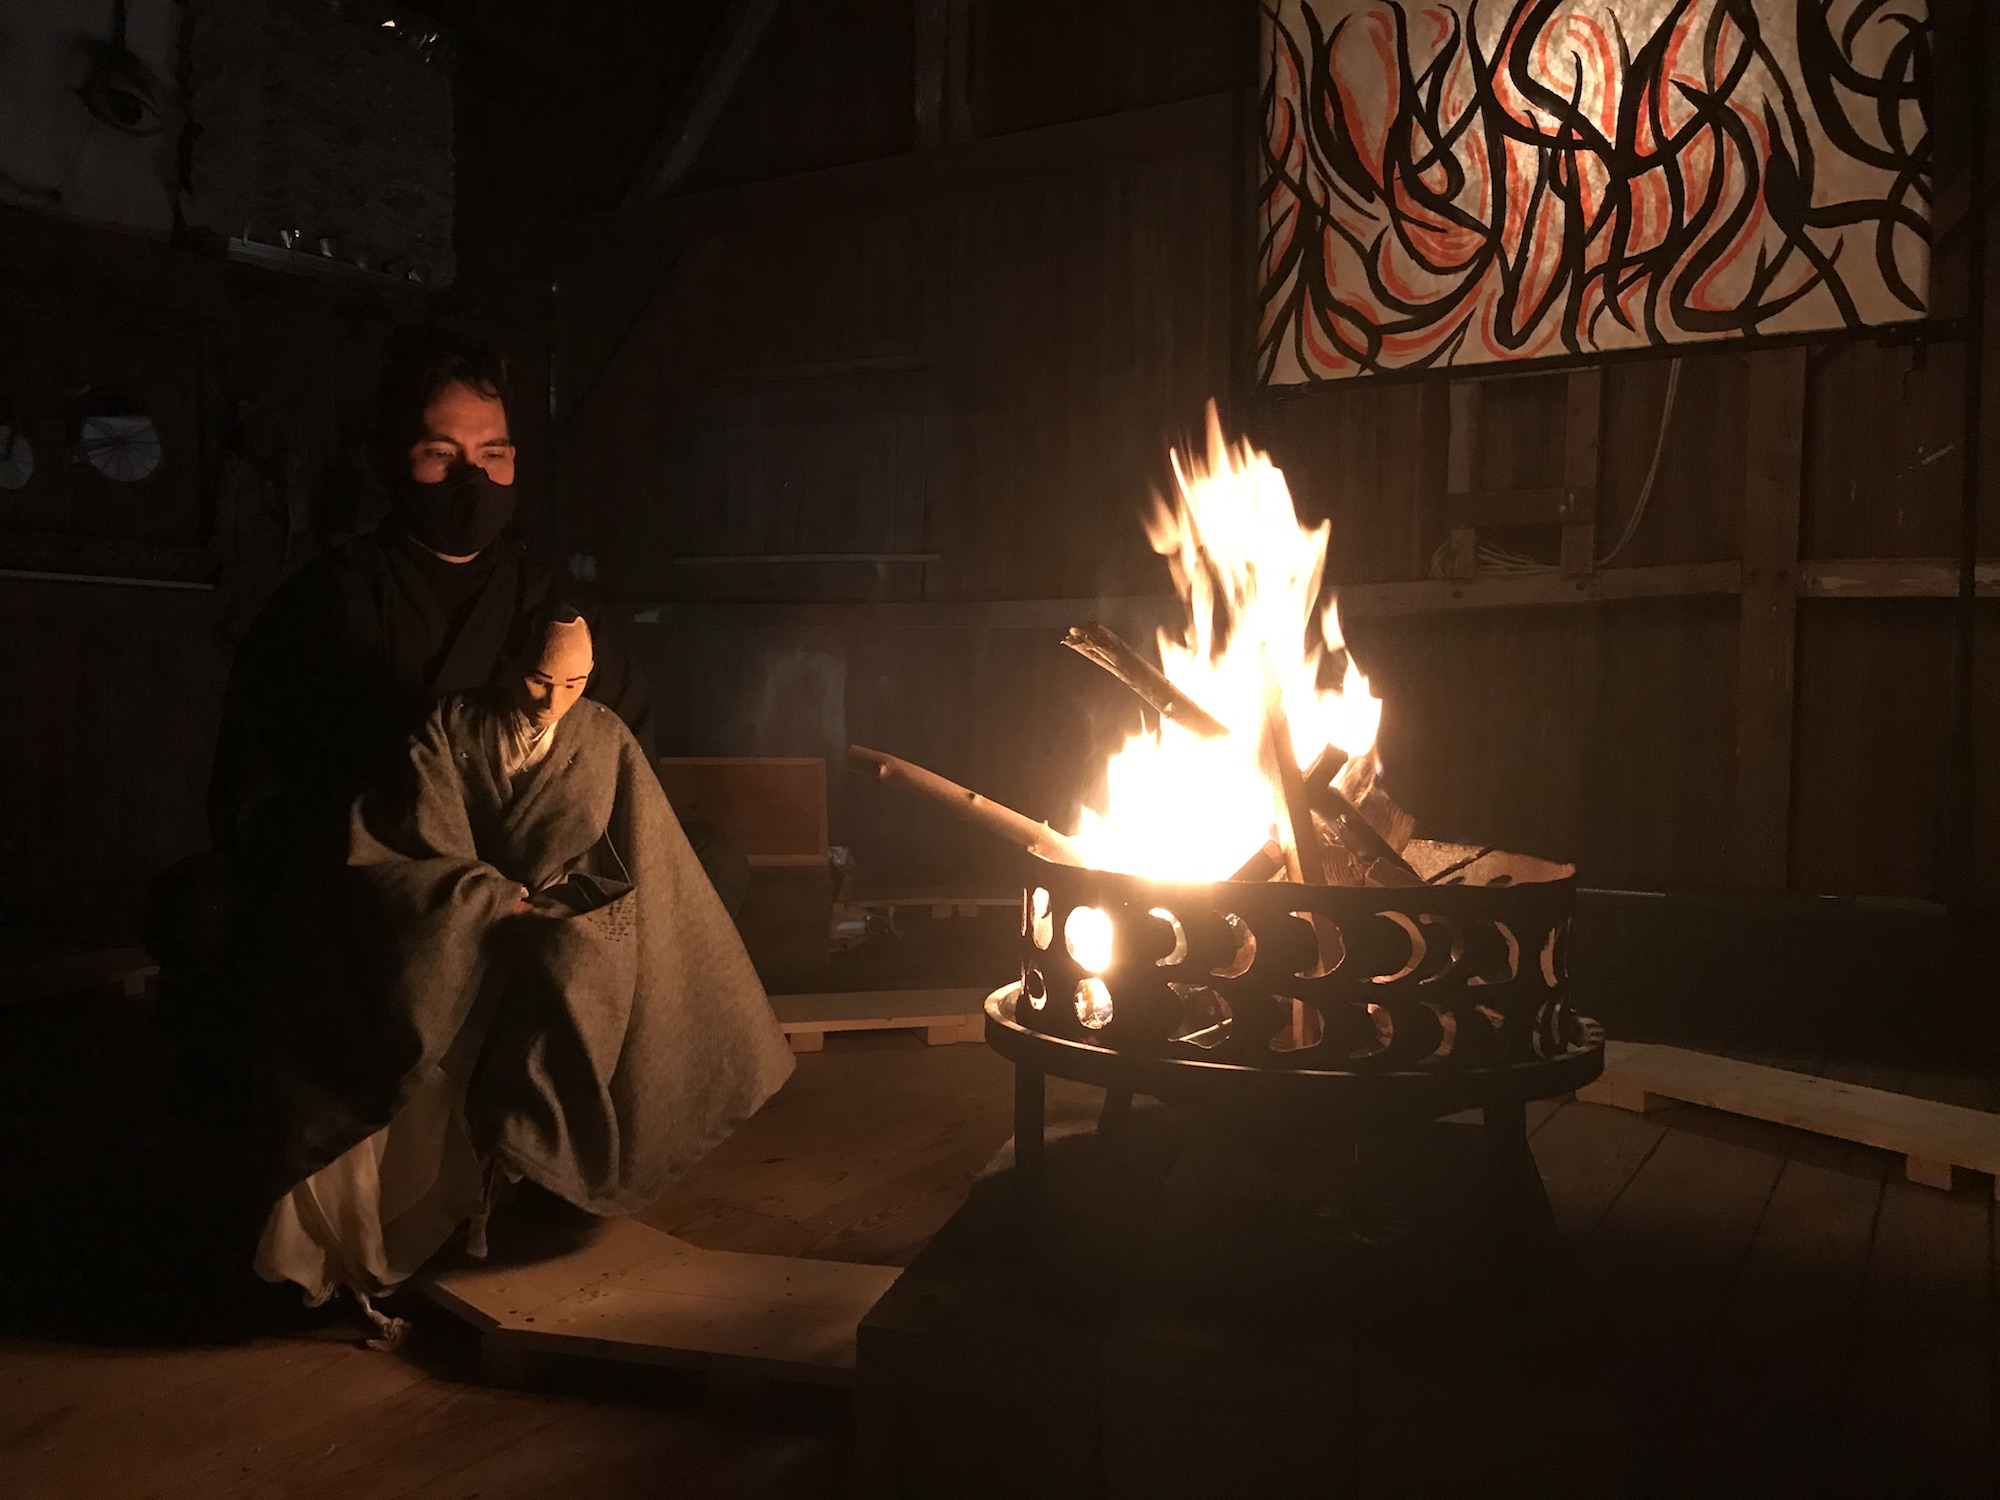 A puppeteer with dark hair and a black mask is holding a puppet wearing a kimono. To the right of them is a fire with burning wood in it. In the background is a painting with black and red strokes.